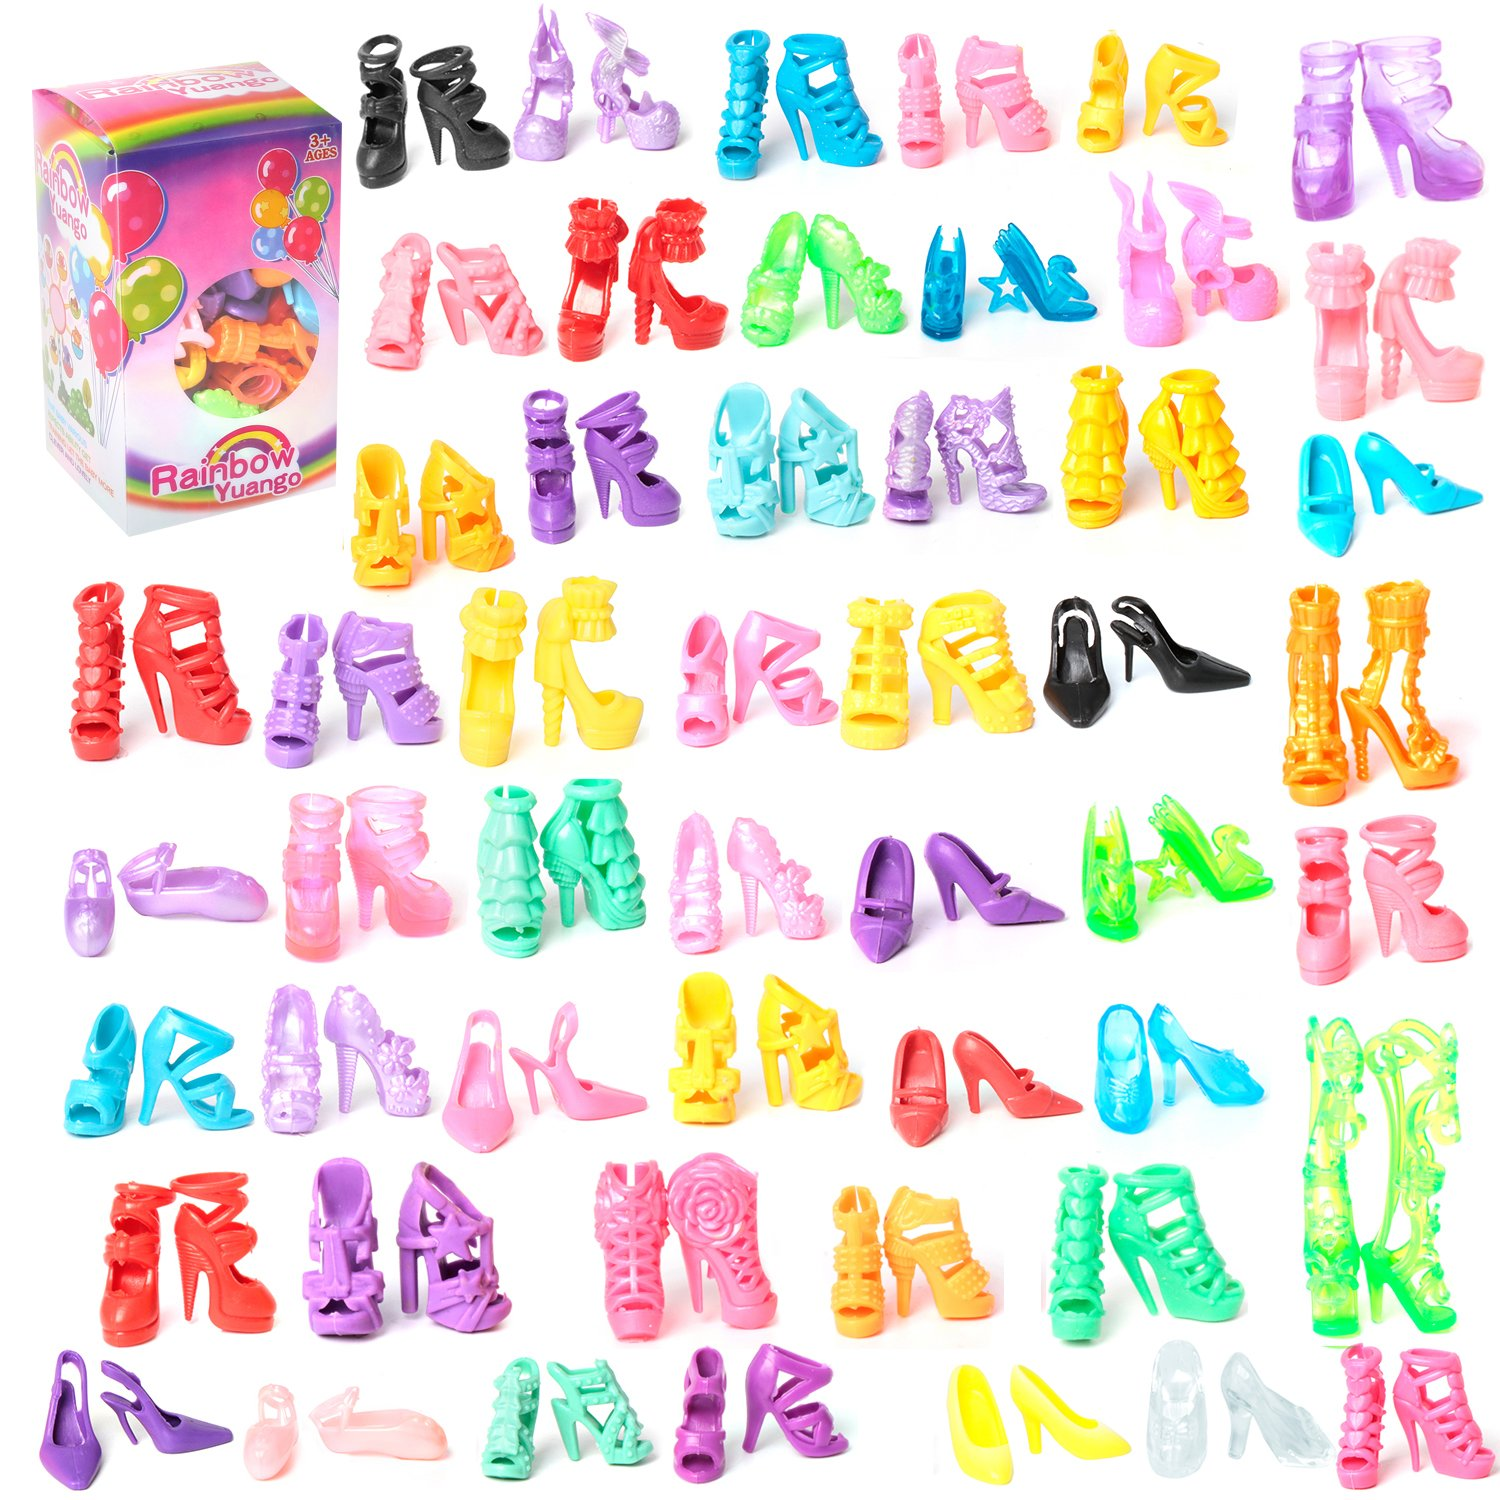 50 Pairs Different High Heel Shoes Boots Accessories For Barbie Doll Rainbow